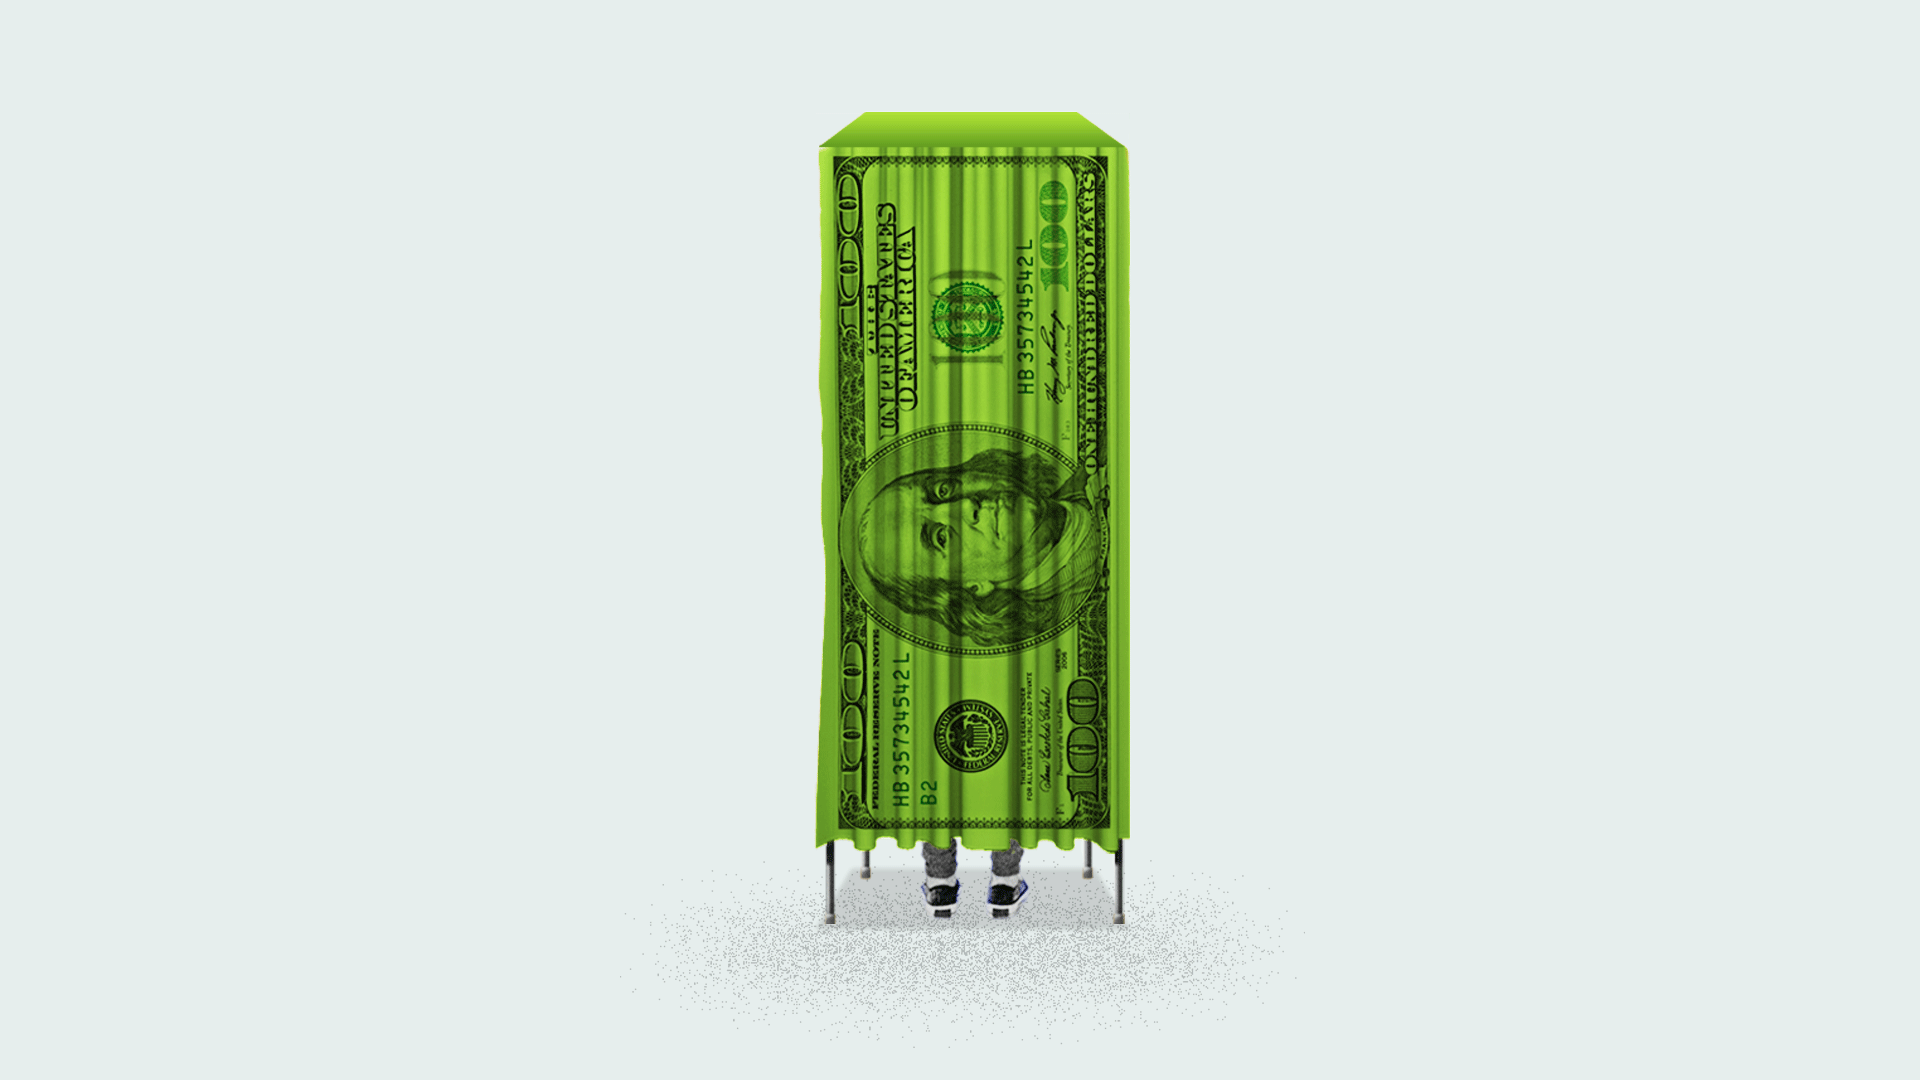 A voting booth made of money